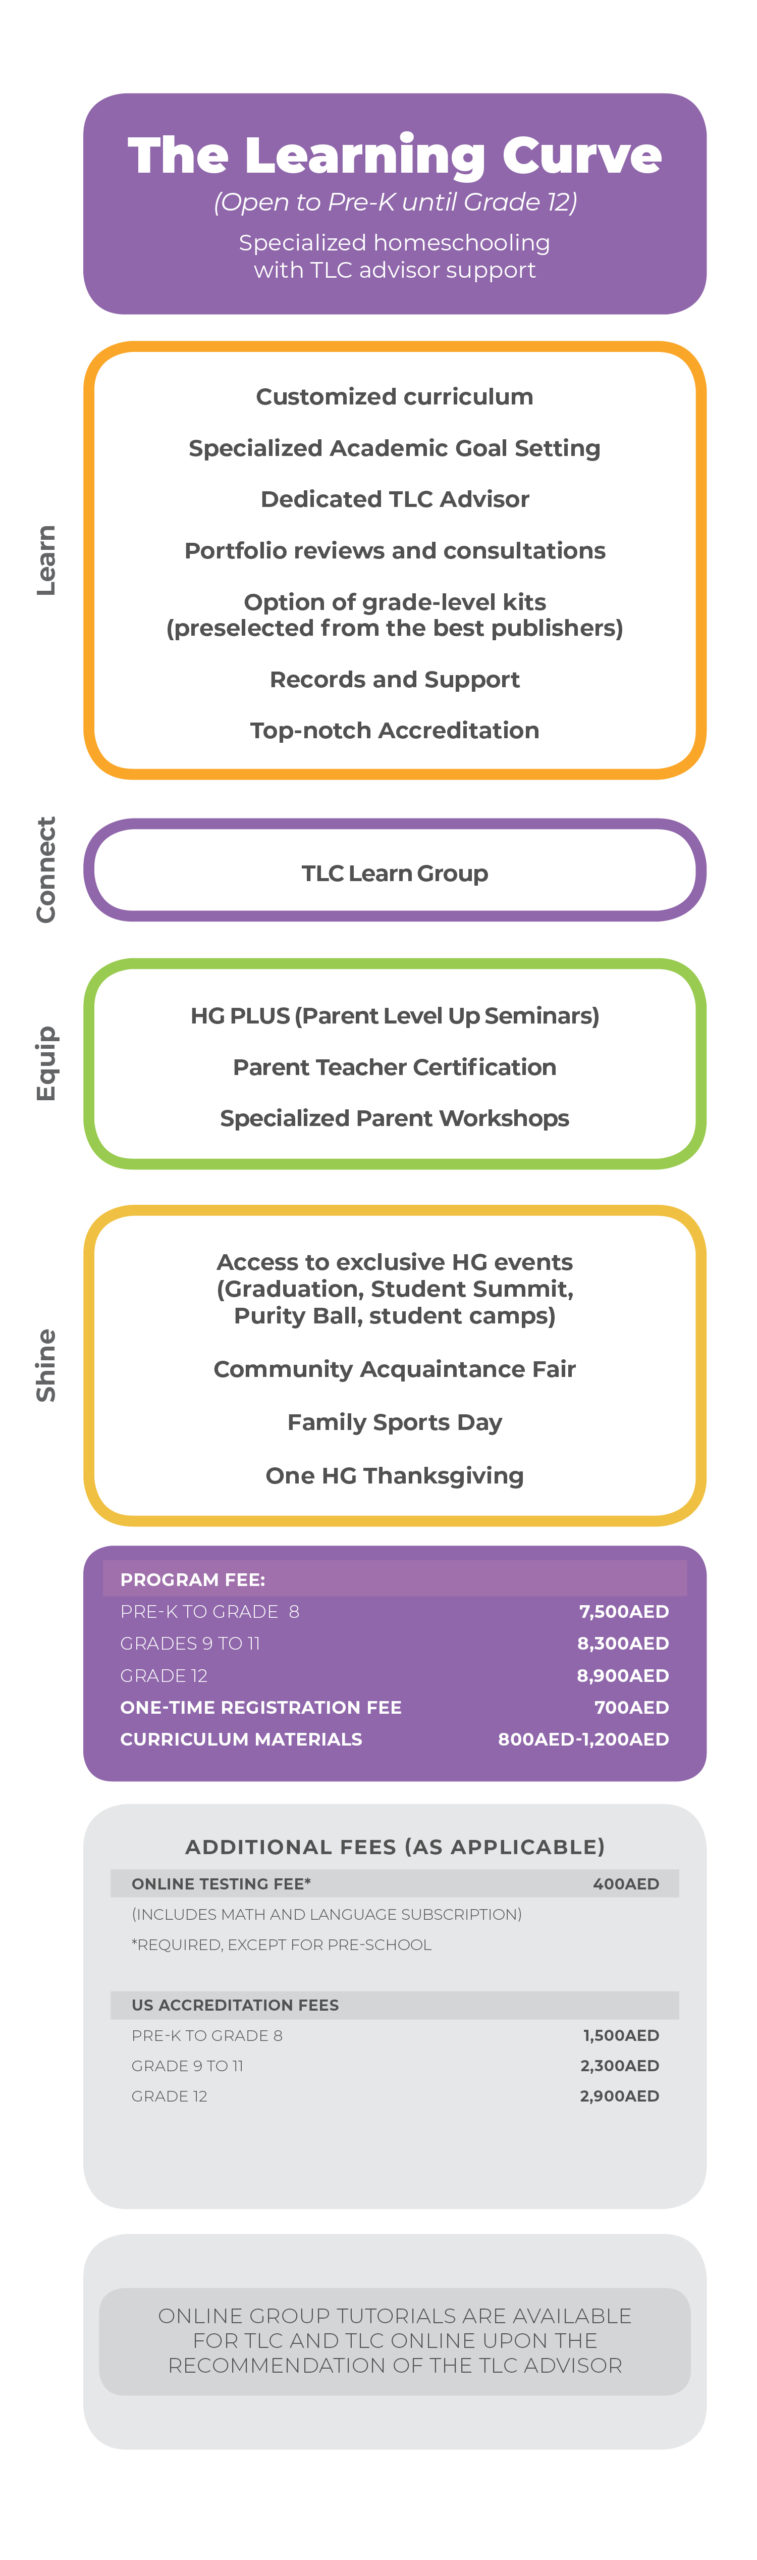 HGME Programs with Pricing 100520206